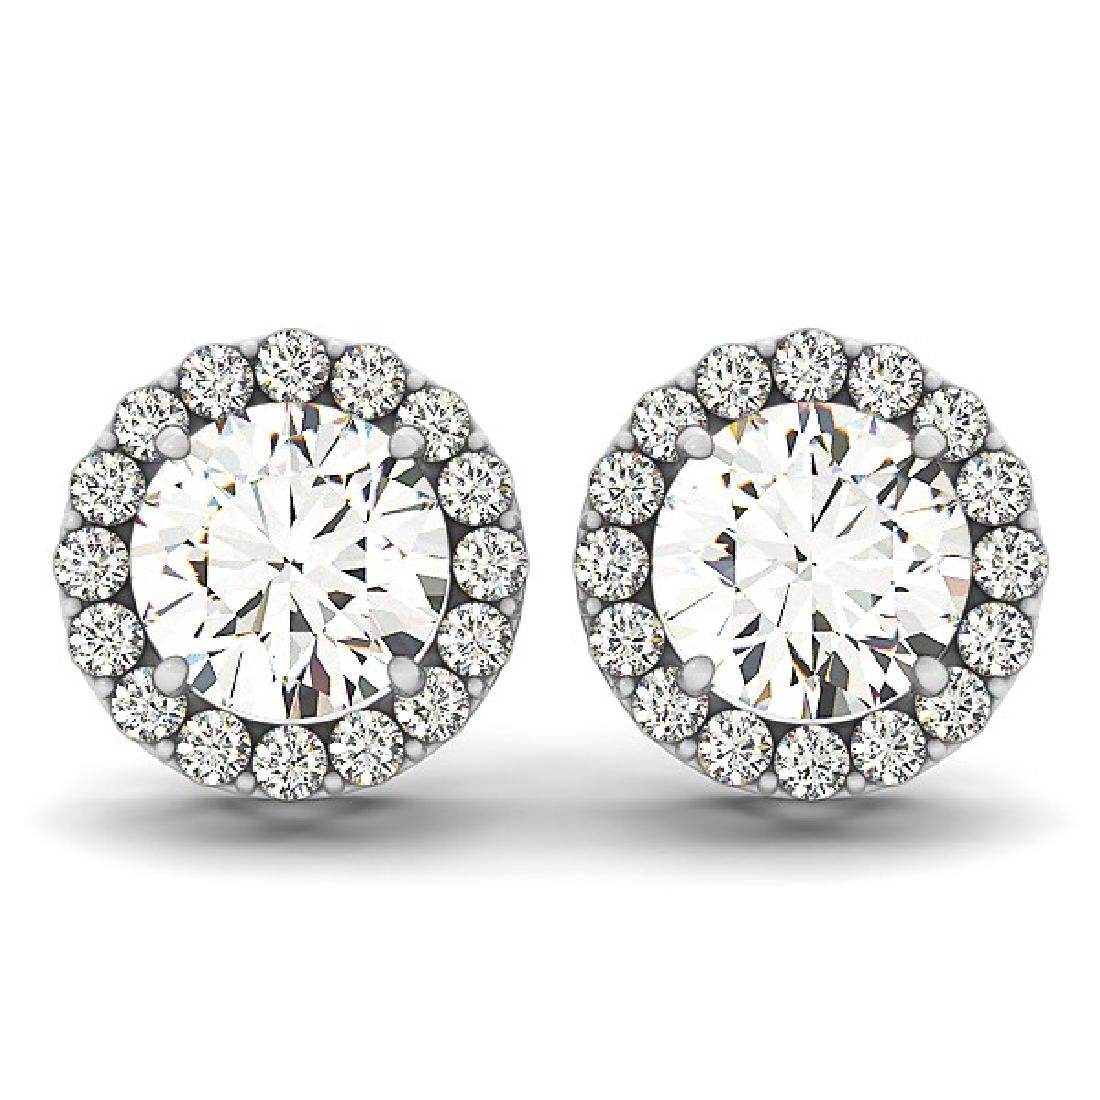 2.85 CTW Diamond Solitaire Earrings VS/SI Certified 14K - 2